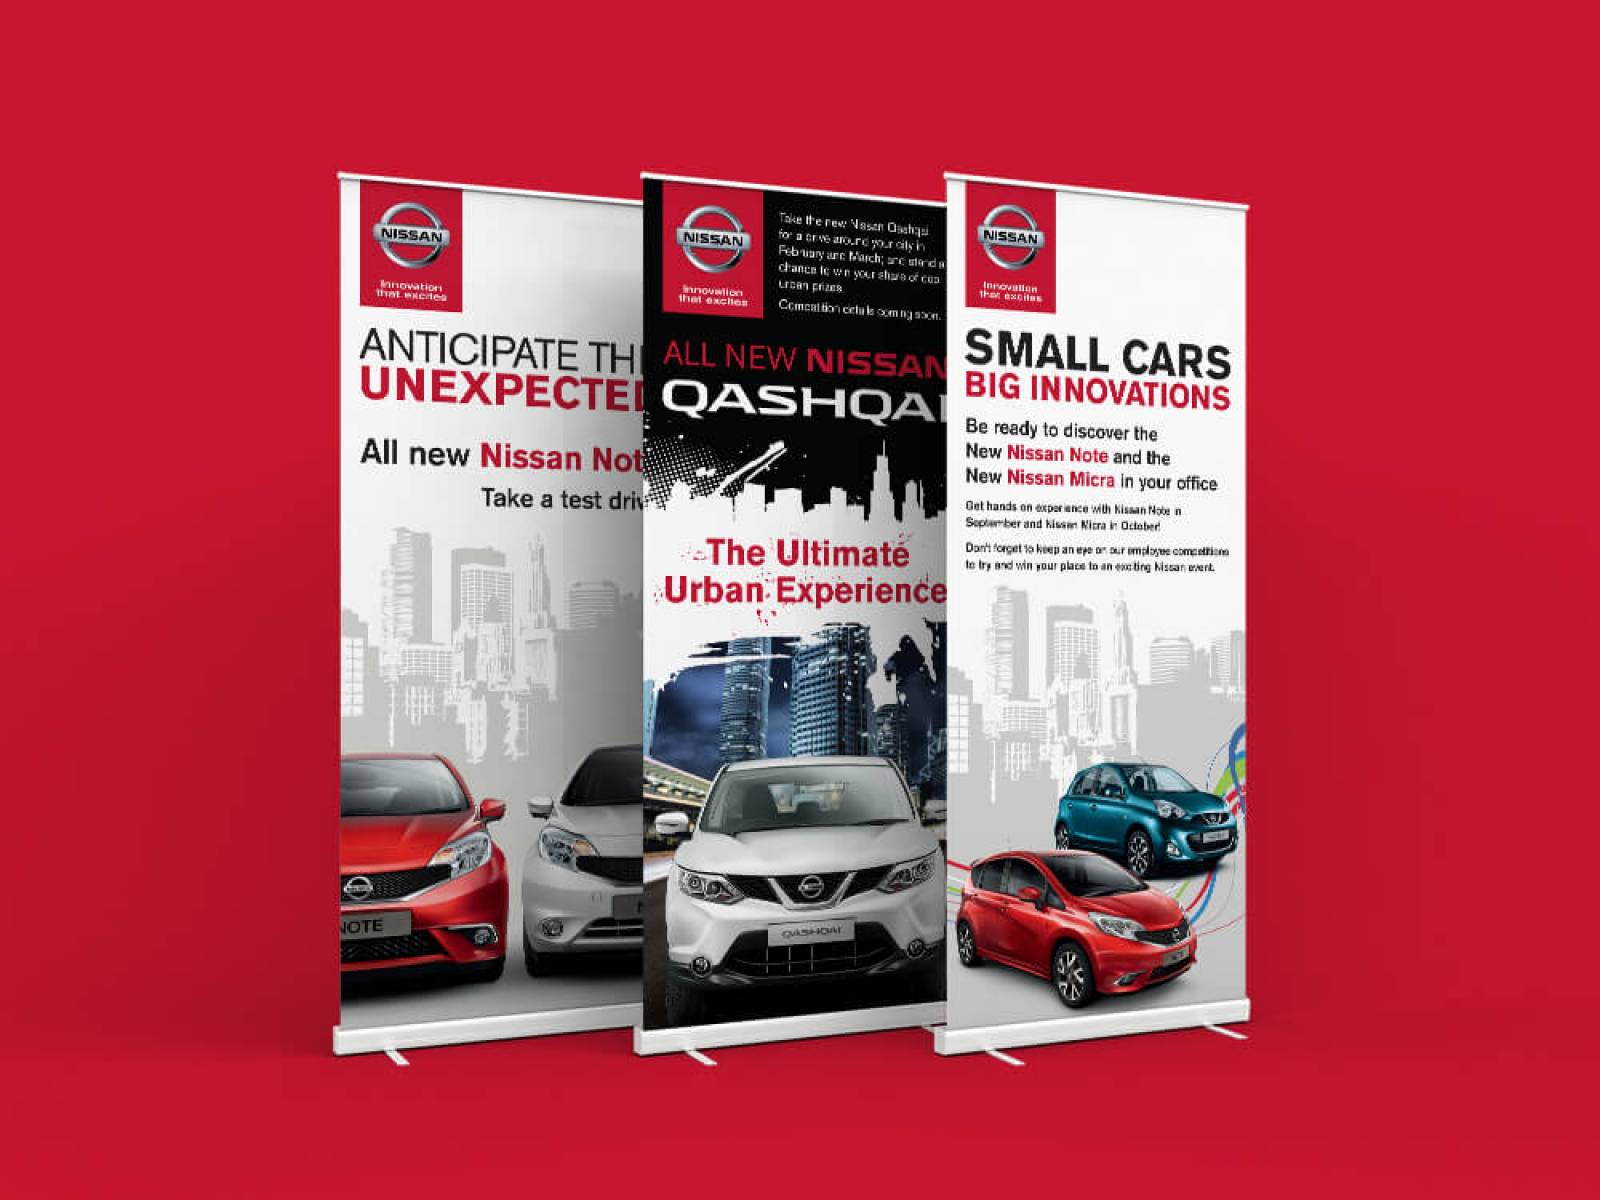 Nissan-banner-2-design-agency-graphic-design-canterbury.jpg